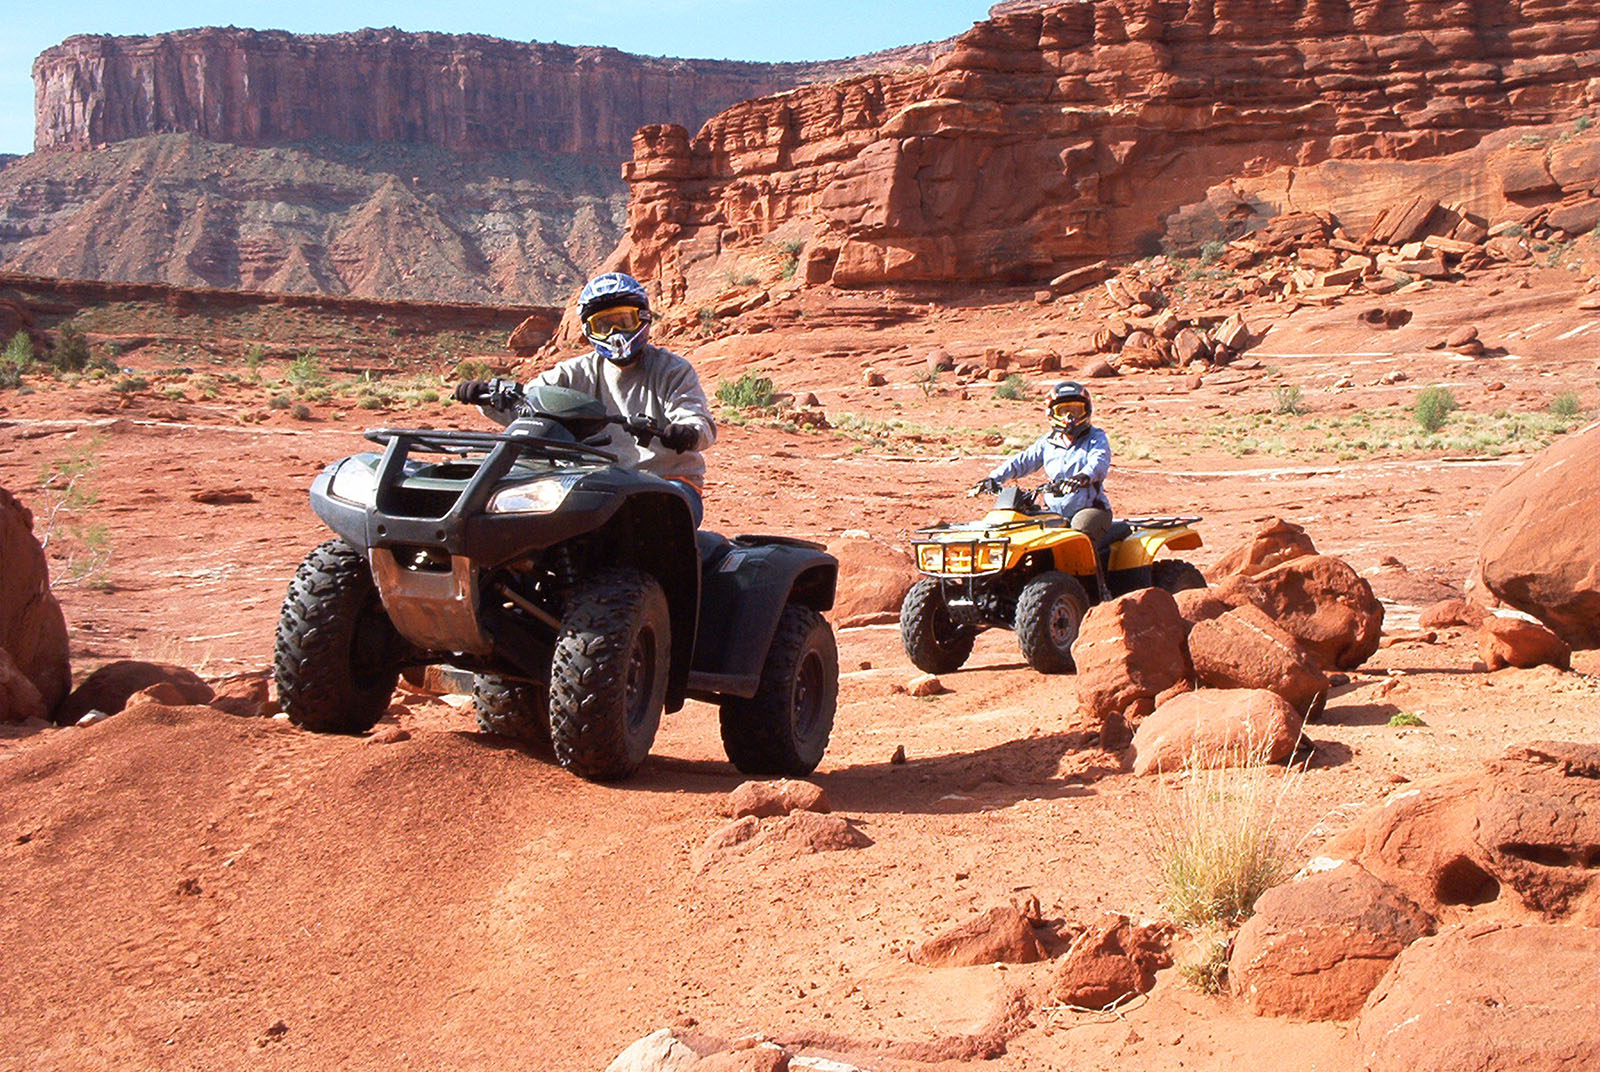 Riding Atvs And Utvs On The Public Lands Surrounding Moab